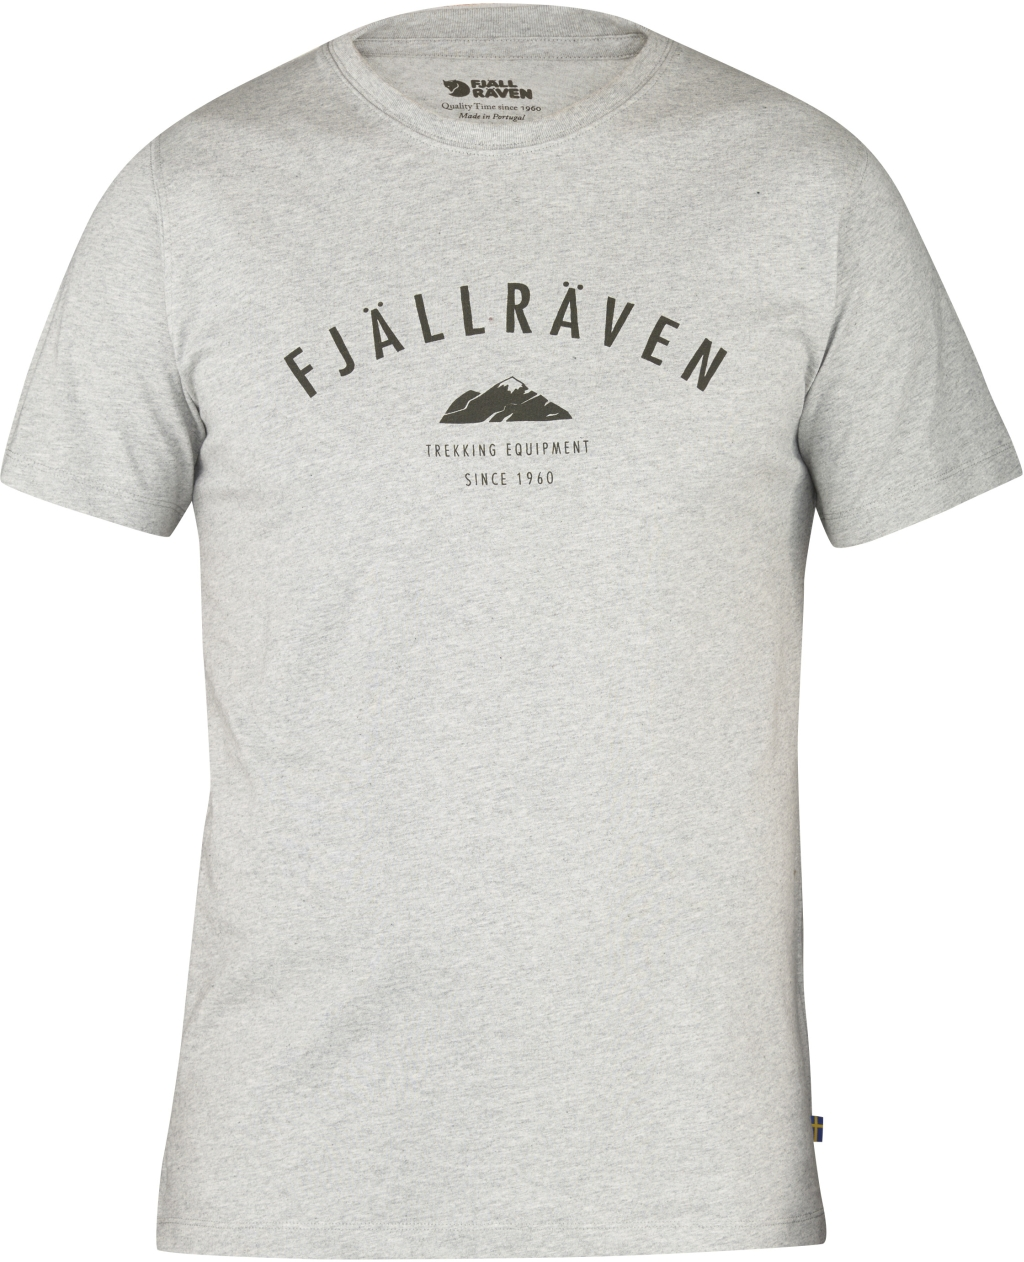 FjallRaven Trekking Equipment T-shirt Grey-30